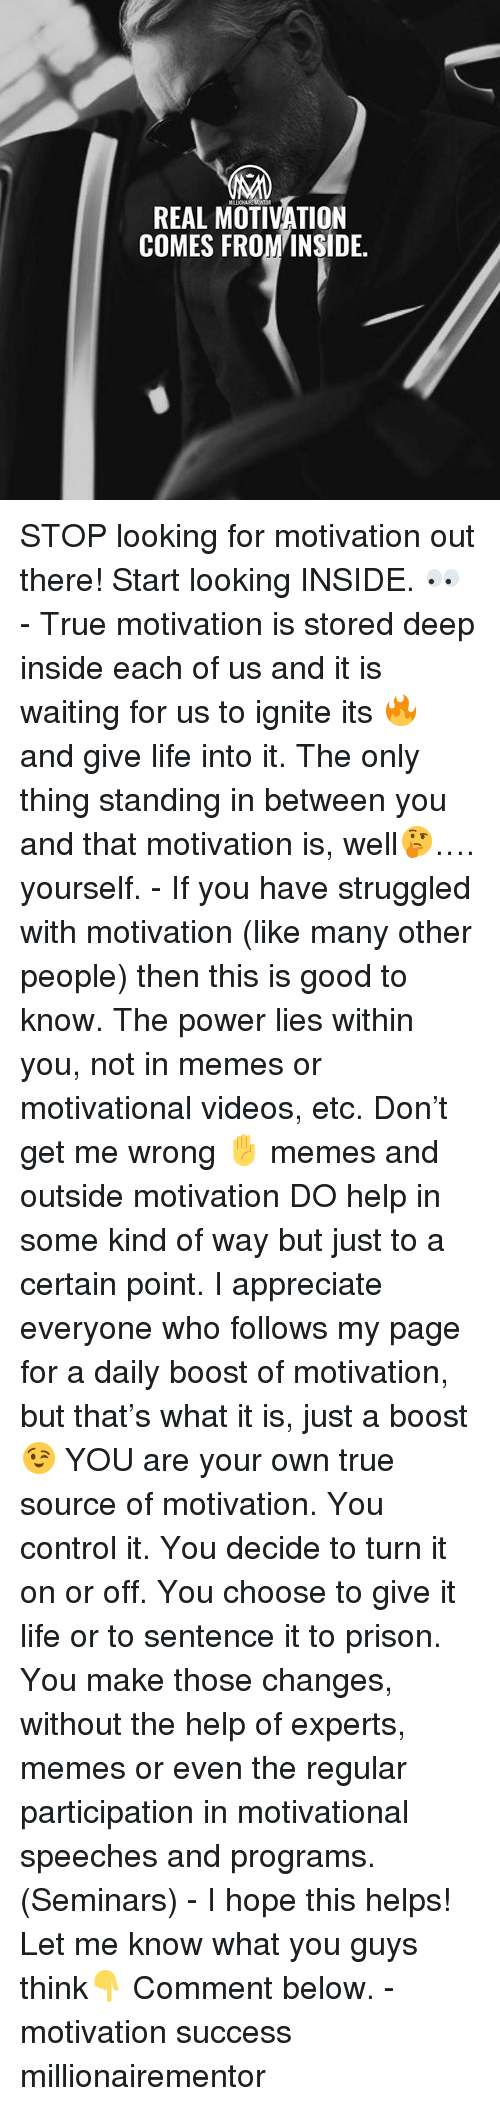 Life, Memes, and True: OR  REAL MOTIVATION  COMES FROMINSIDE. STOP looking for motivation out there! Start looking INSIDE. 👀 - True motivation is stored deep inside each of us and it is waiting for us to ignite its 🔥 and give life into it. The only thing standing in between you and that motivation is, well🤔…. yourself. - If you have struggled with motivation (like many other people) then this is good to know. The power lies within you, not in memes or motivational videos, etc. Don't get me wrong ✋ memes and outside motivation DO help in some kind of way but just to a certain point. I appreciate everyone who follows my page for a daily boost of motivation, but that's what it is, just a boost 😉 YOU are your own true source of motivation. You control it. You decide to turn it on or off. You choose to give it life or to sentence it to prison. You make those changes, without the help of experts, memes or even the regular participation in motivational speeches and programs. (Seminars) - I hope this helps! Let me know what you guys think👇 Comment below. - motivation success millionairementor